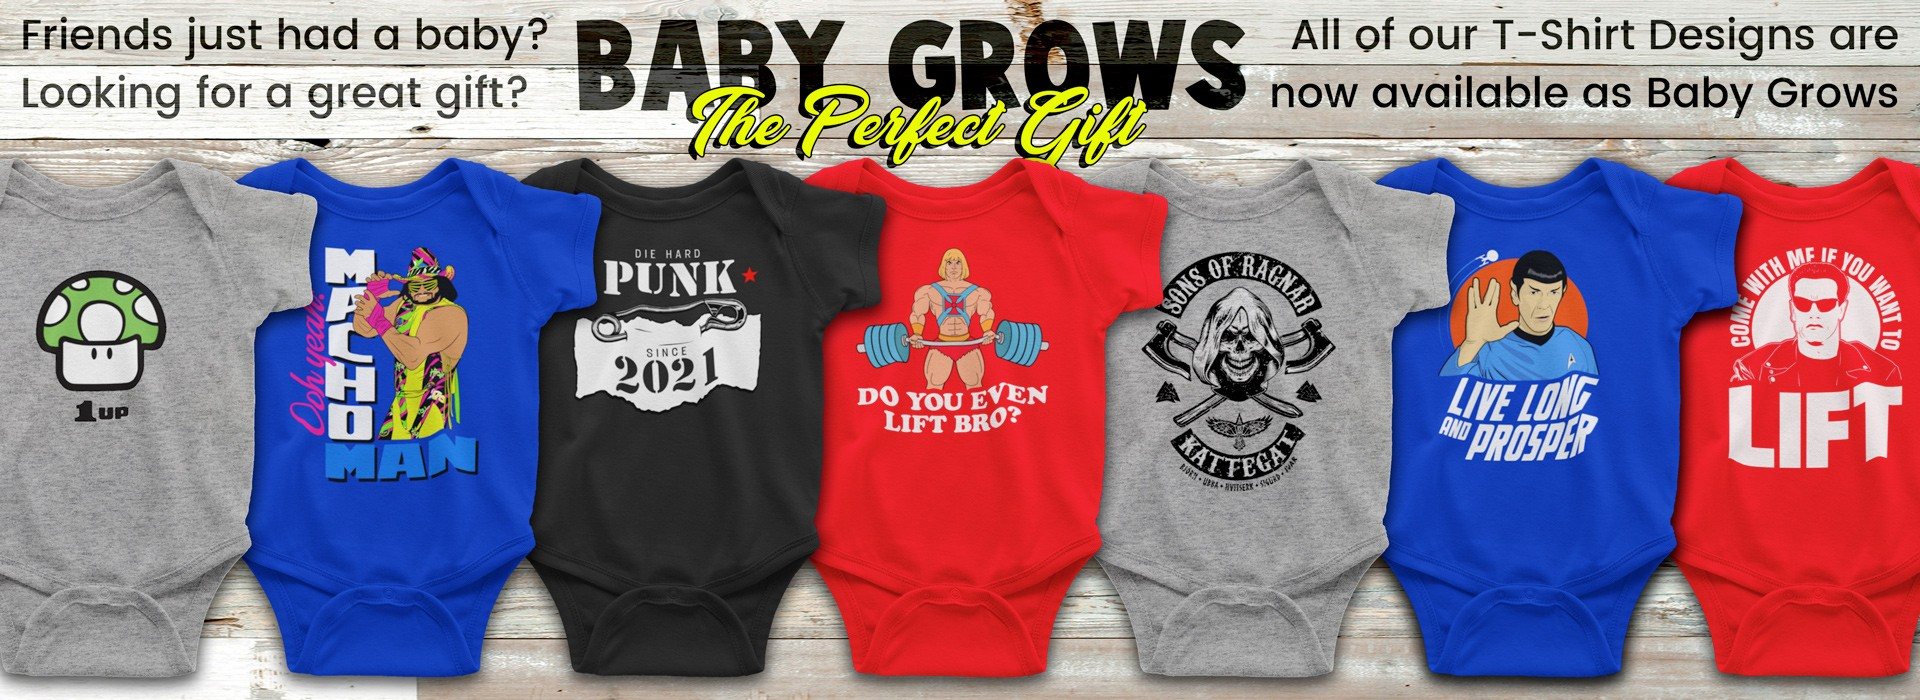 Baby Grows, Onesies and Kids T-Shirts